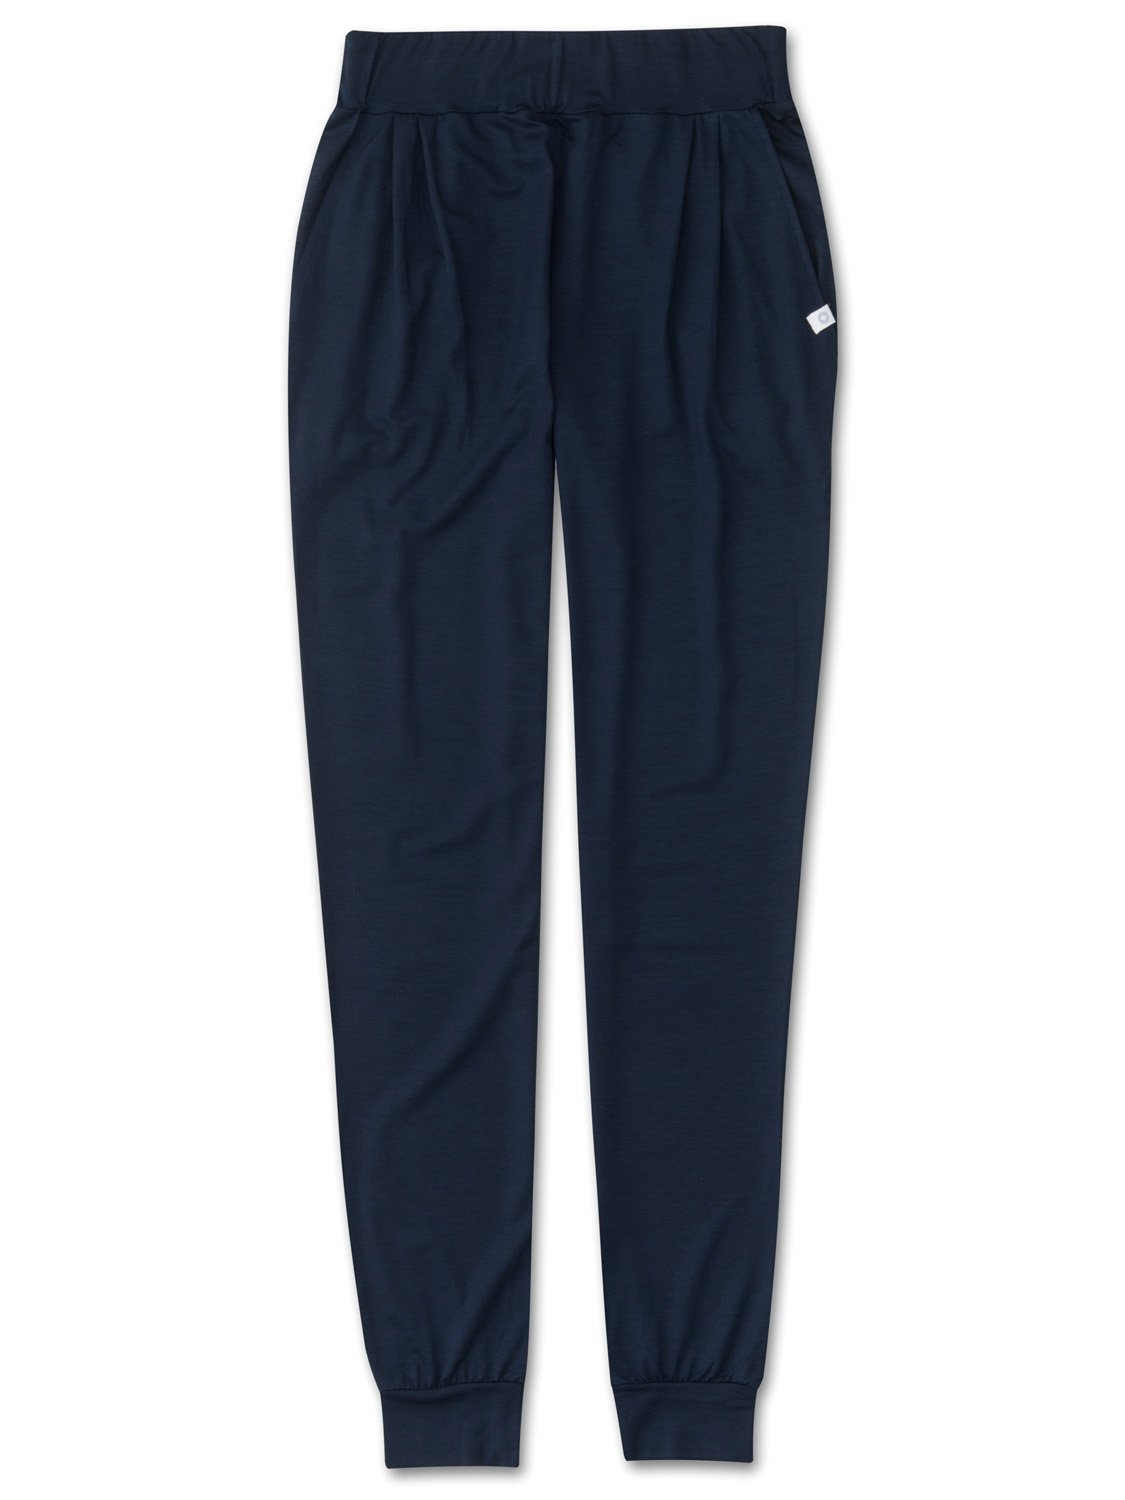 Women's Jersey Leisure Pants Basel Micro Modal Stretch Navy